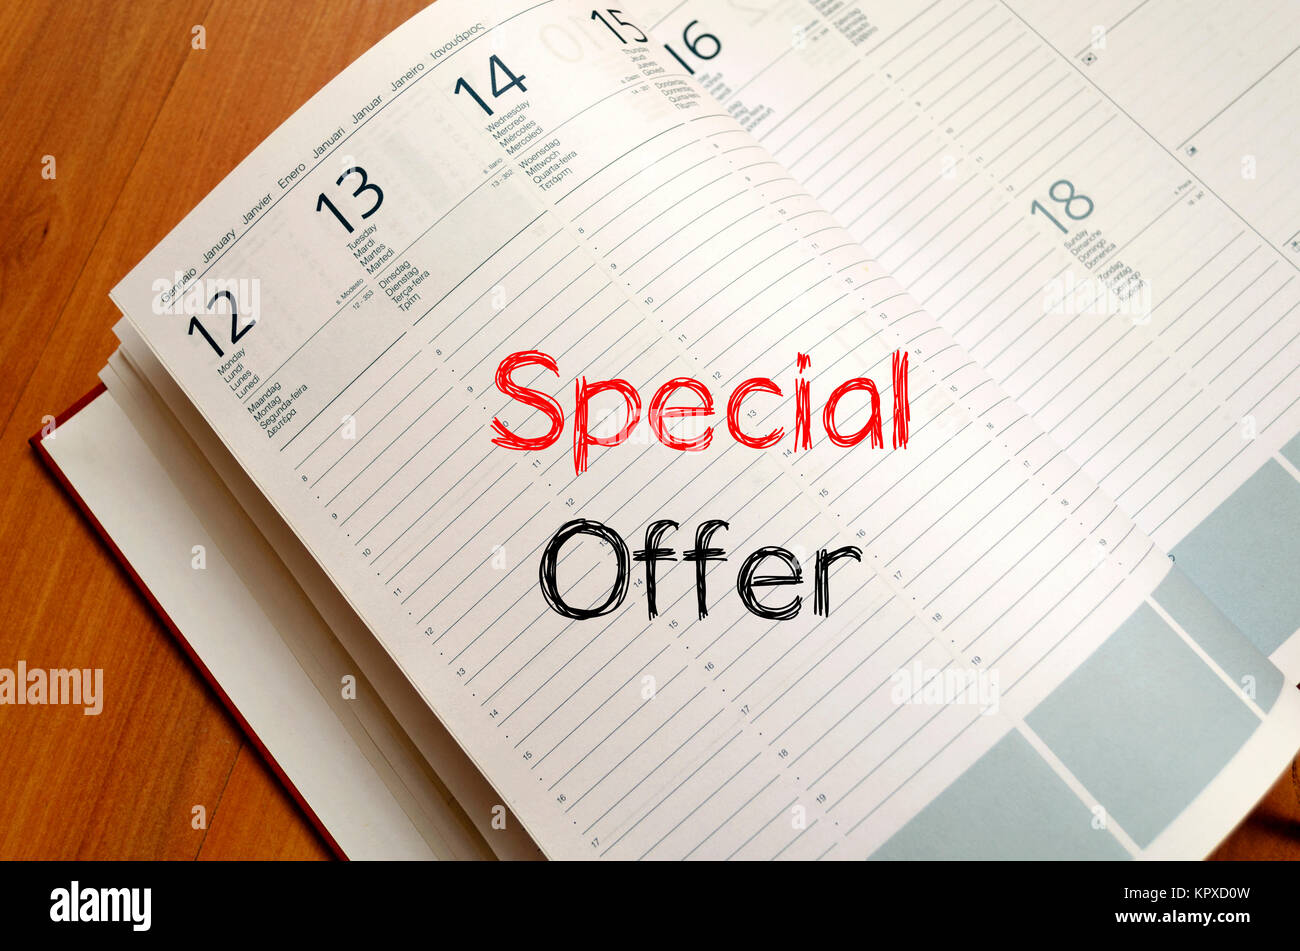 Special offer write on notebook - Stock Image